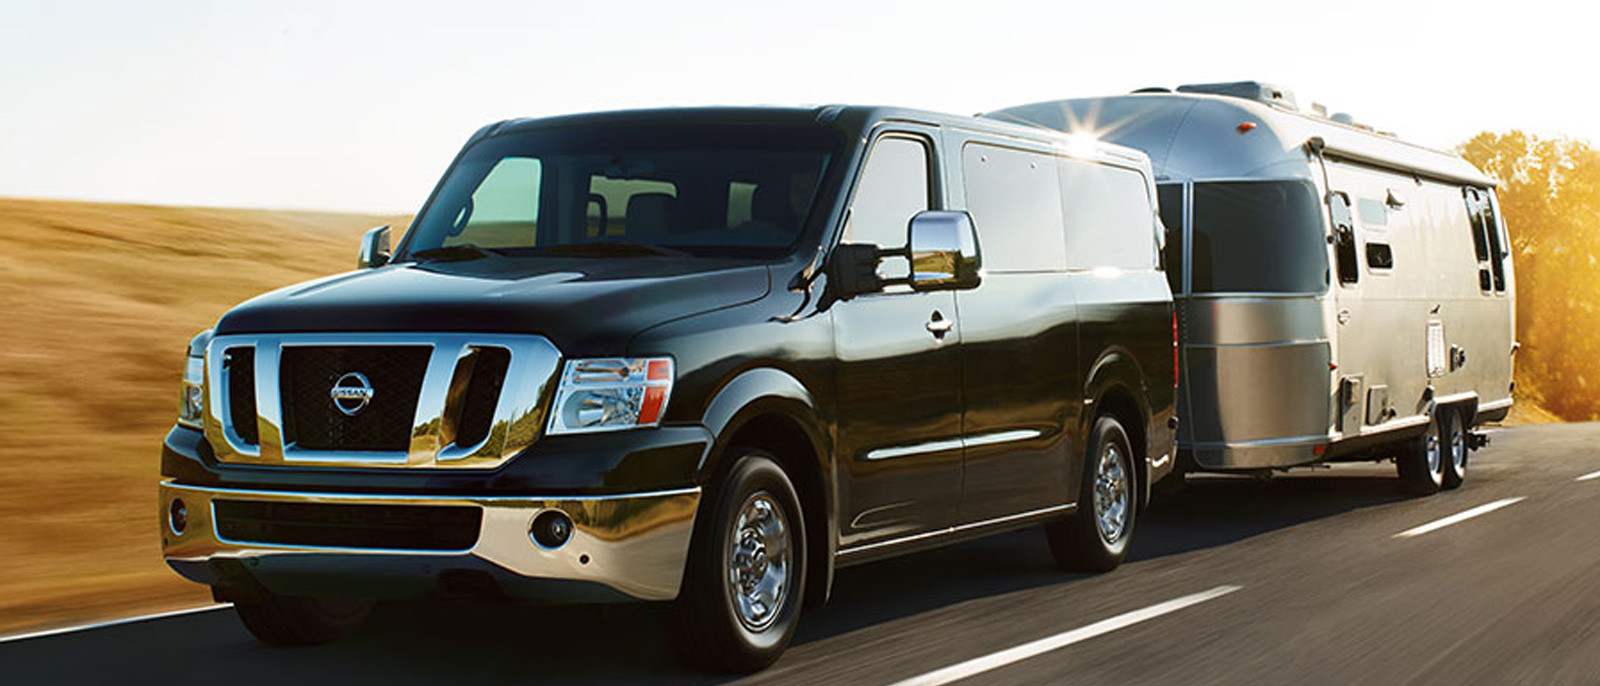 Nissan Of Elk Grove >> Commercial Vehicles for Sale near Sacramento, CA - Nissan of Elk Grove